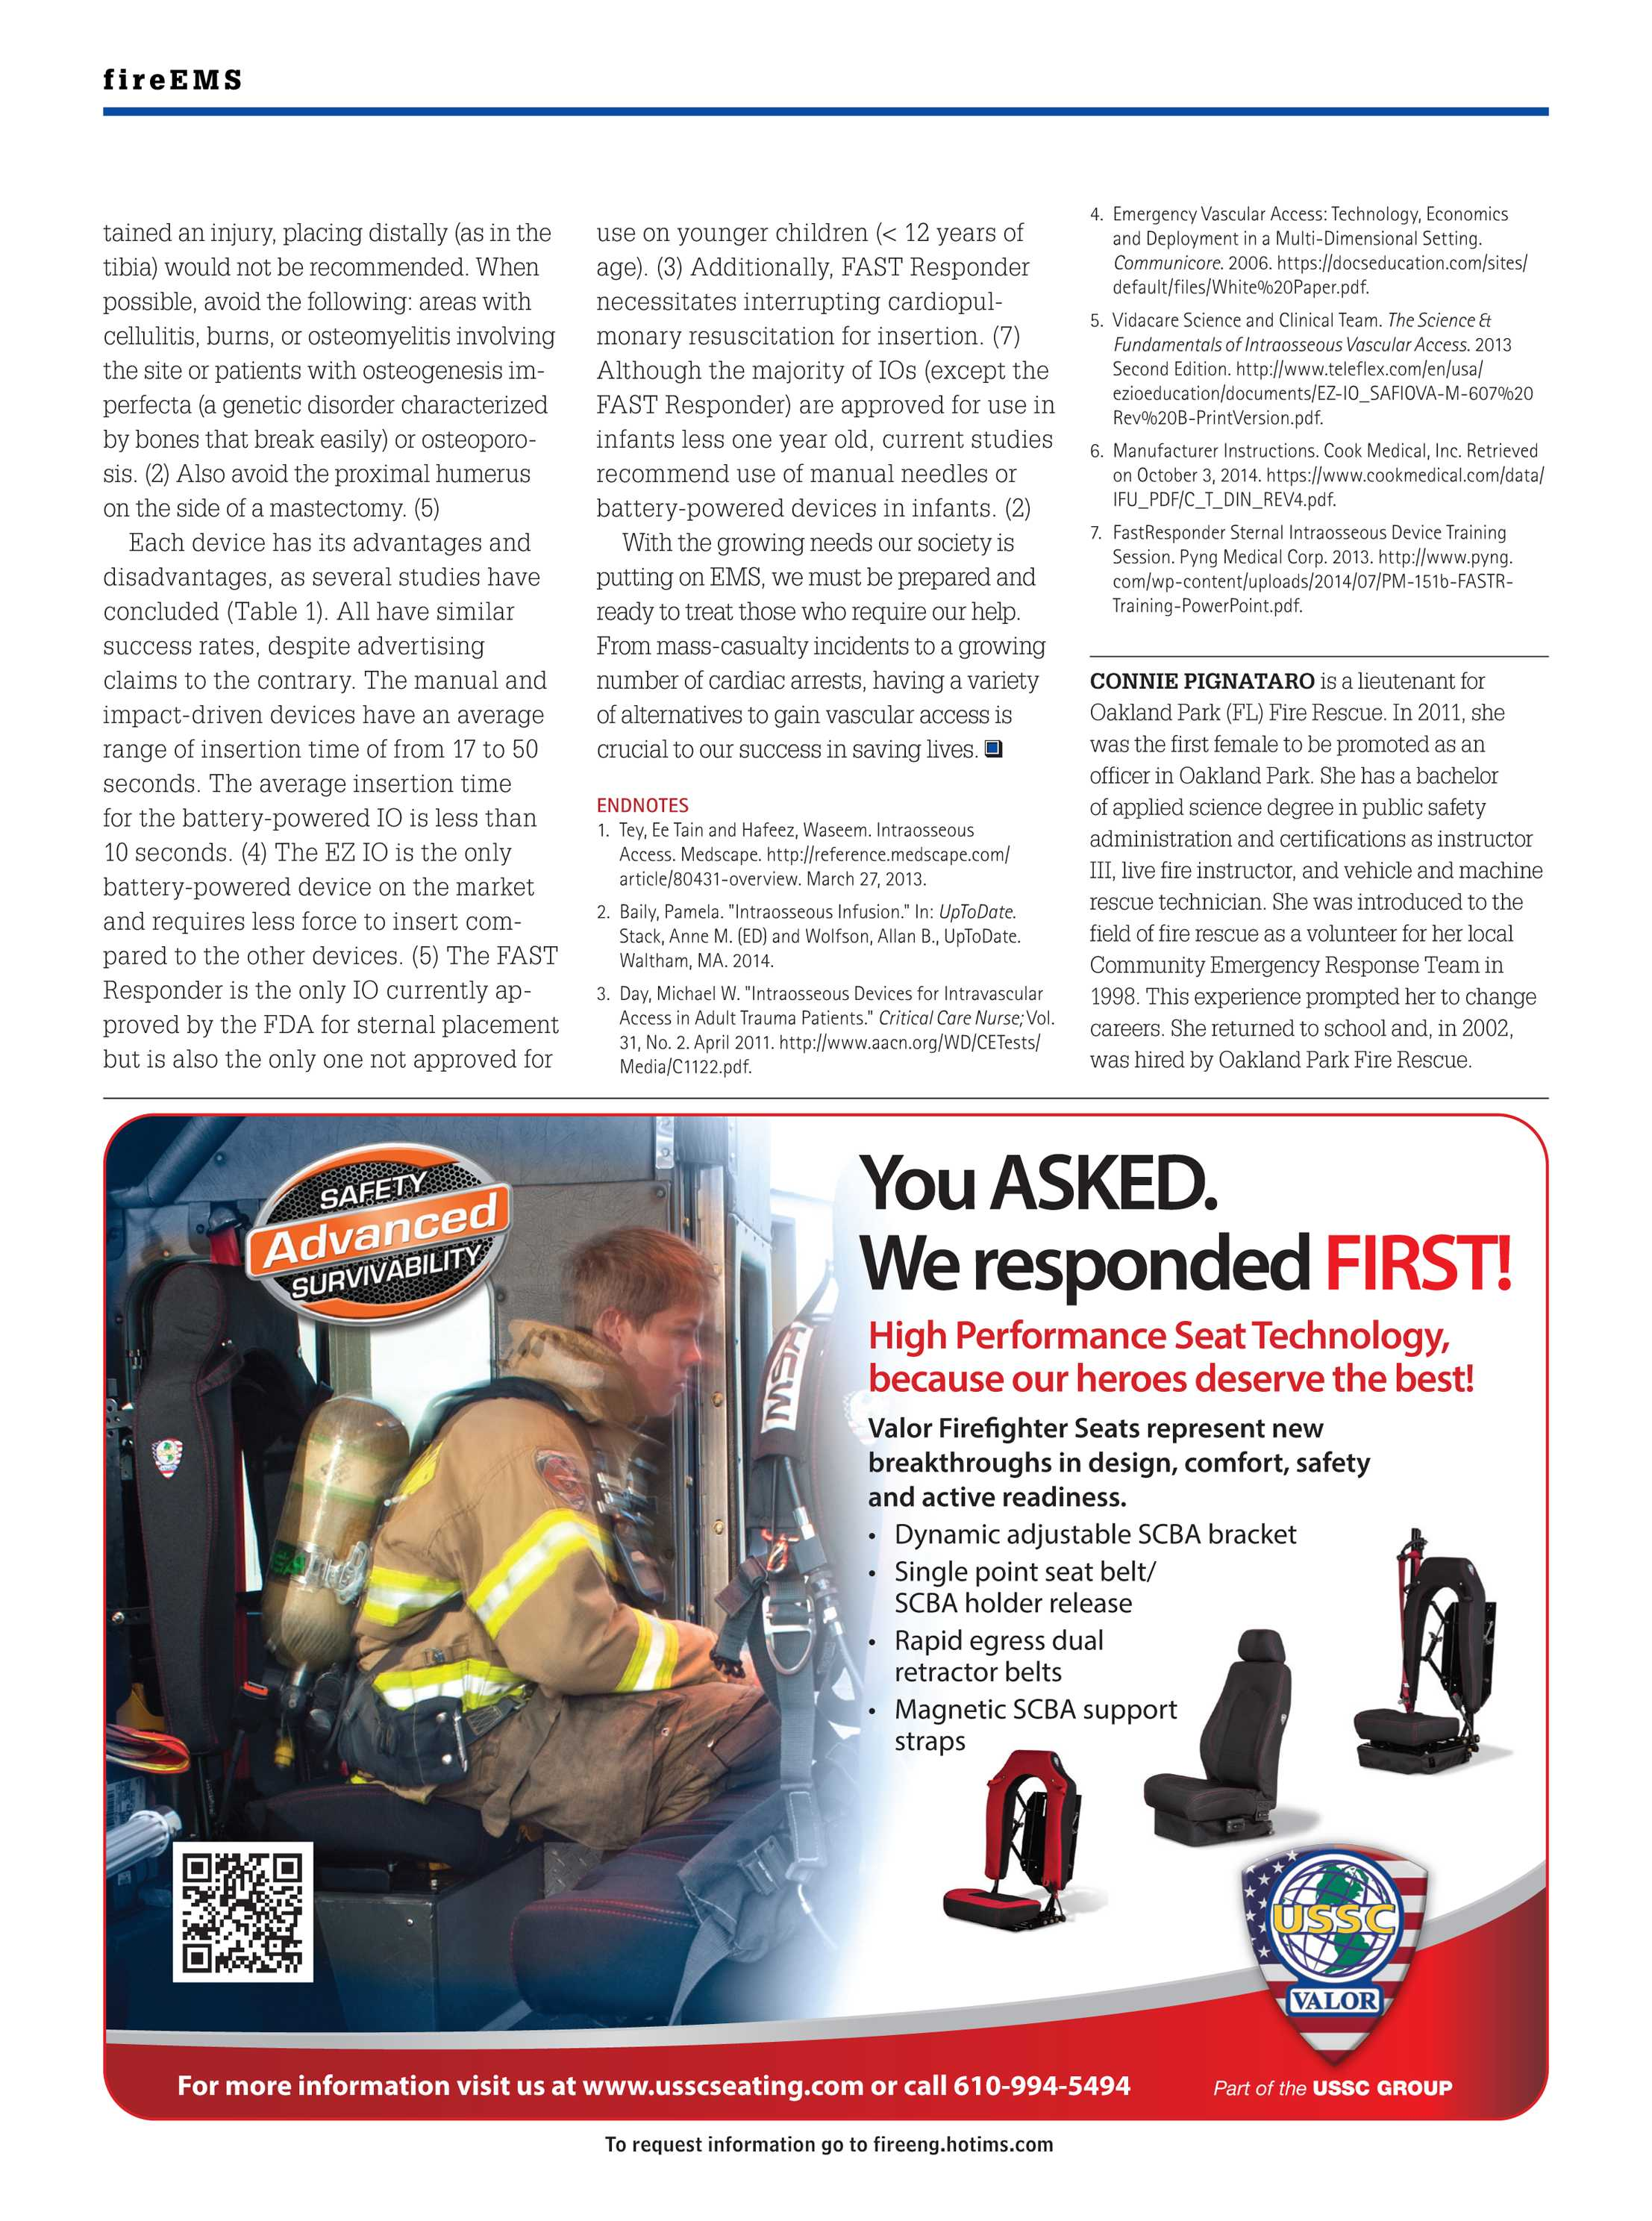 Fire Engineering - February 2015 - page 30